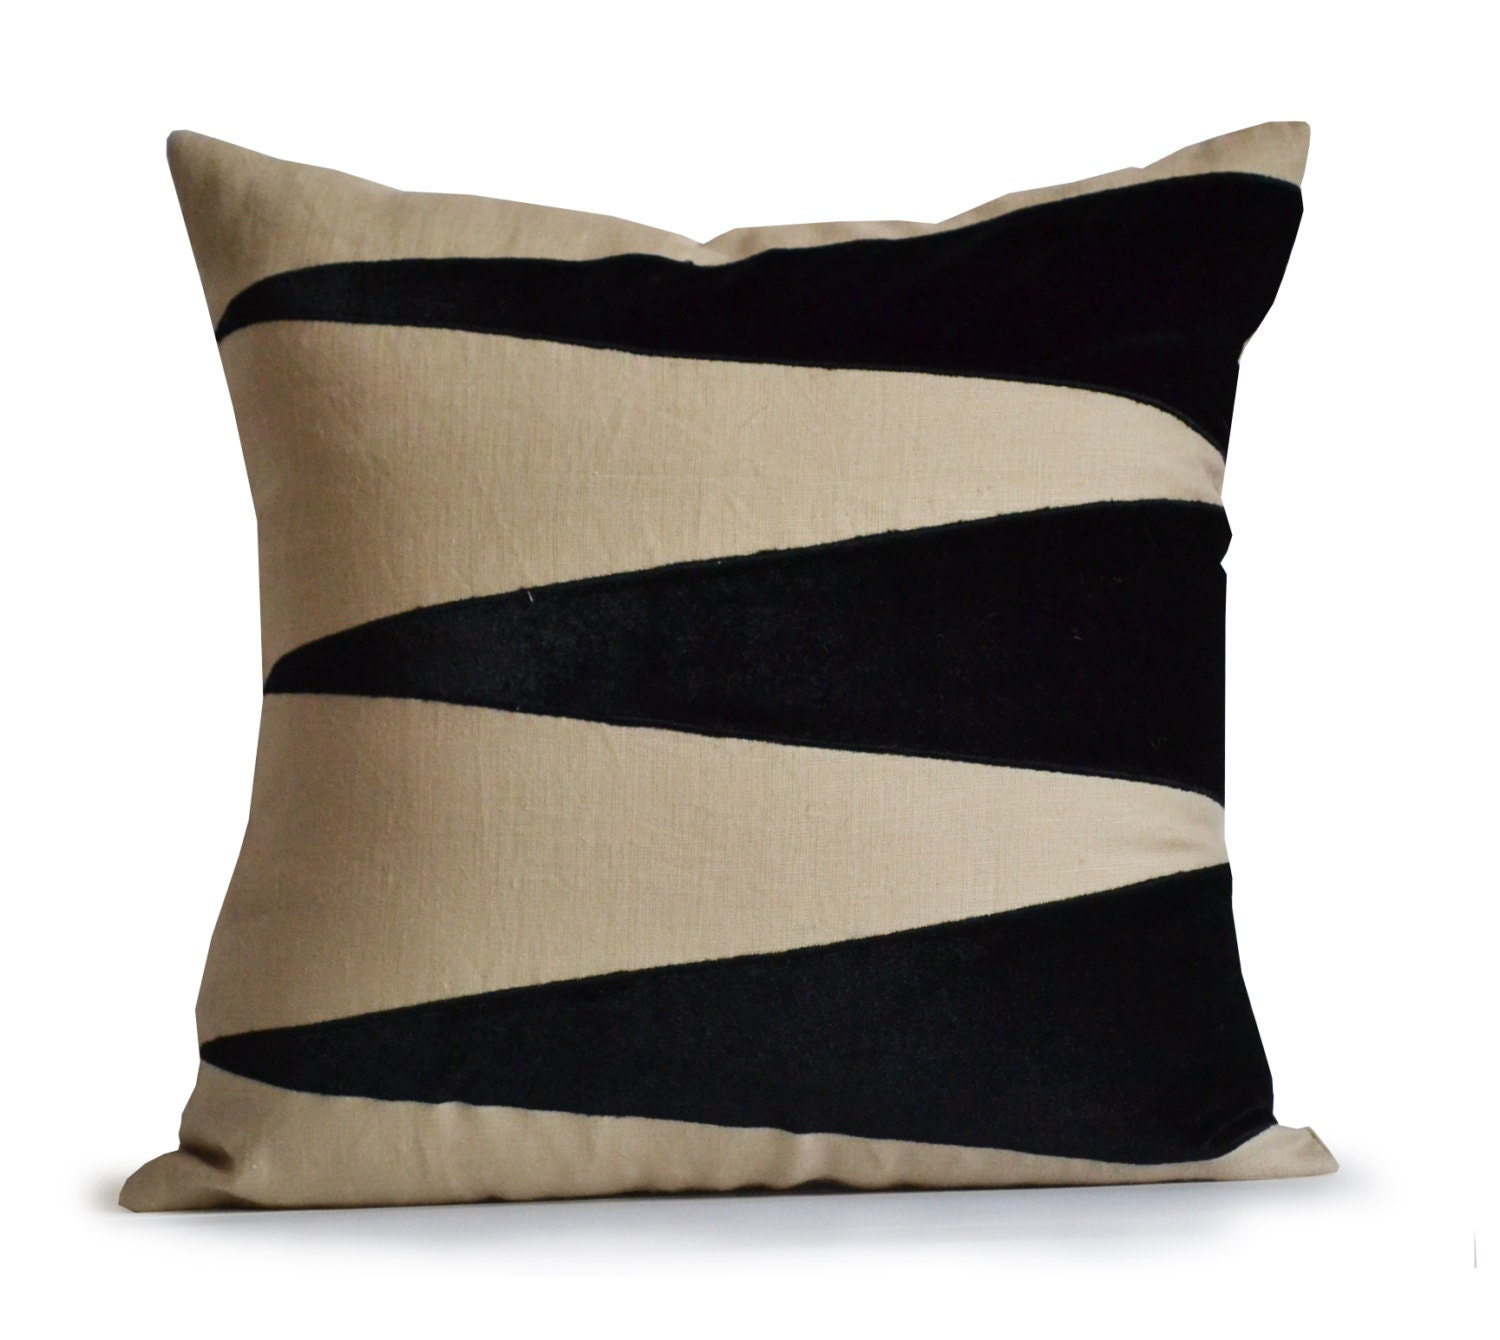 Decorative throw linen pillow cover applique velvet pillow - Decorative throw pillows ...